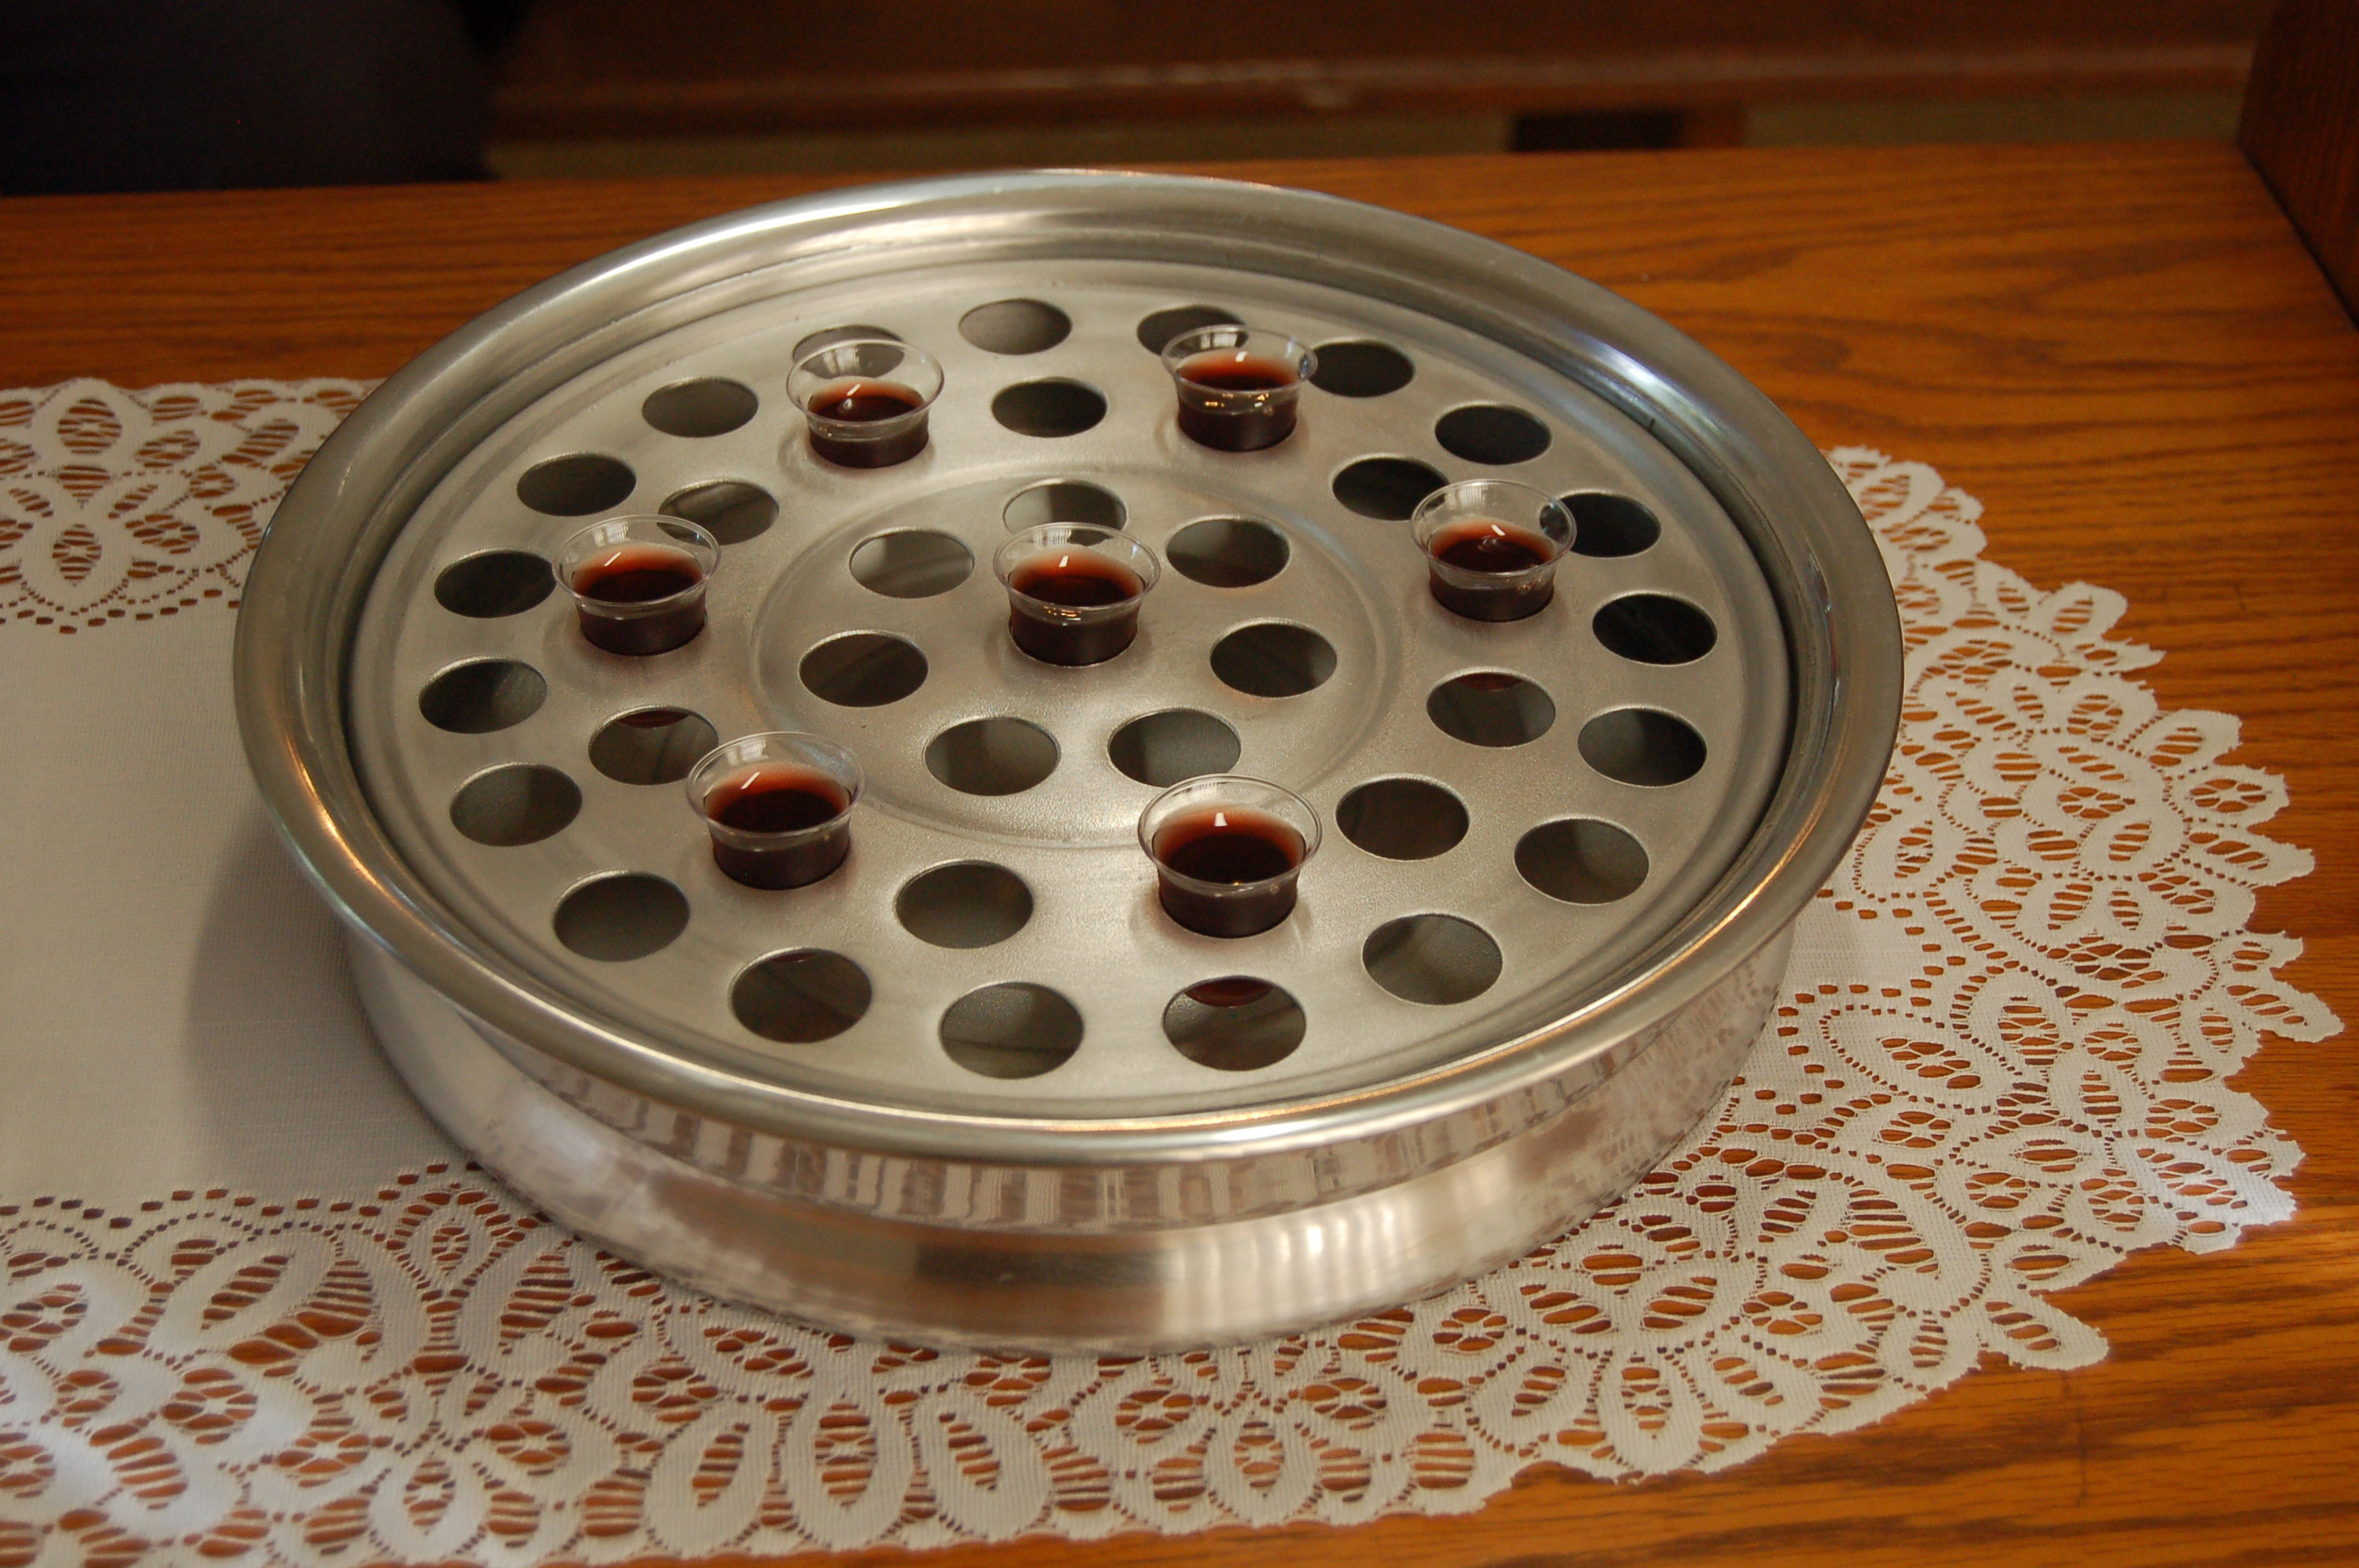 Christian Stock Photos by Linda Bateman - Communion Emblem Prepared - Fruit of the Vine - on Lace Doily